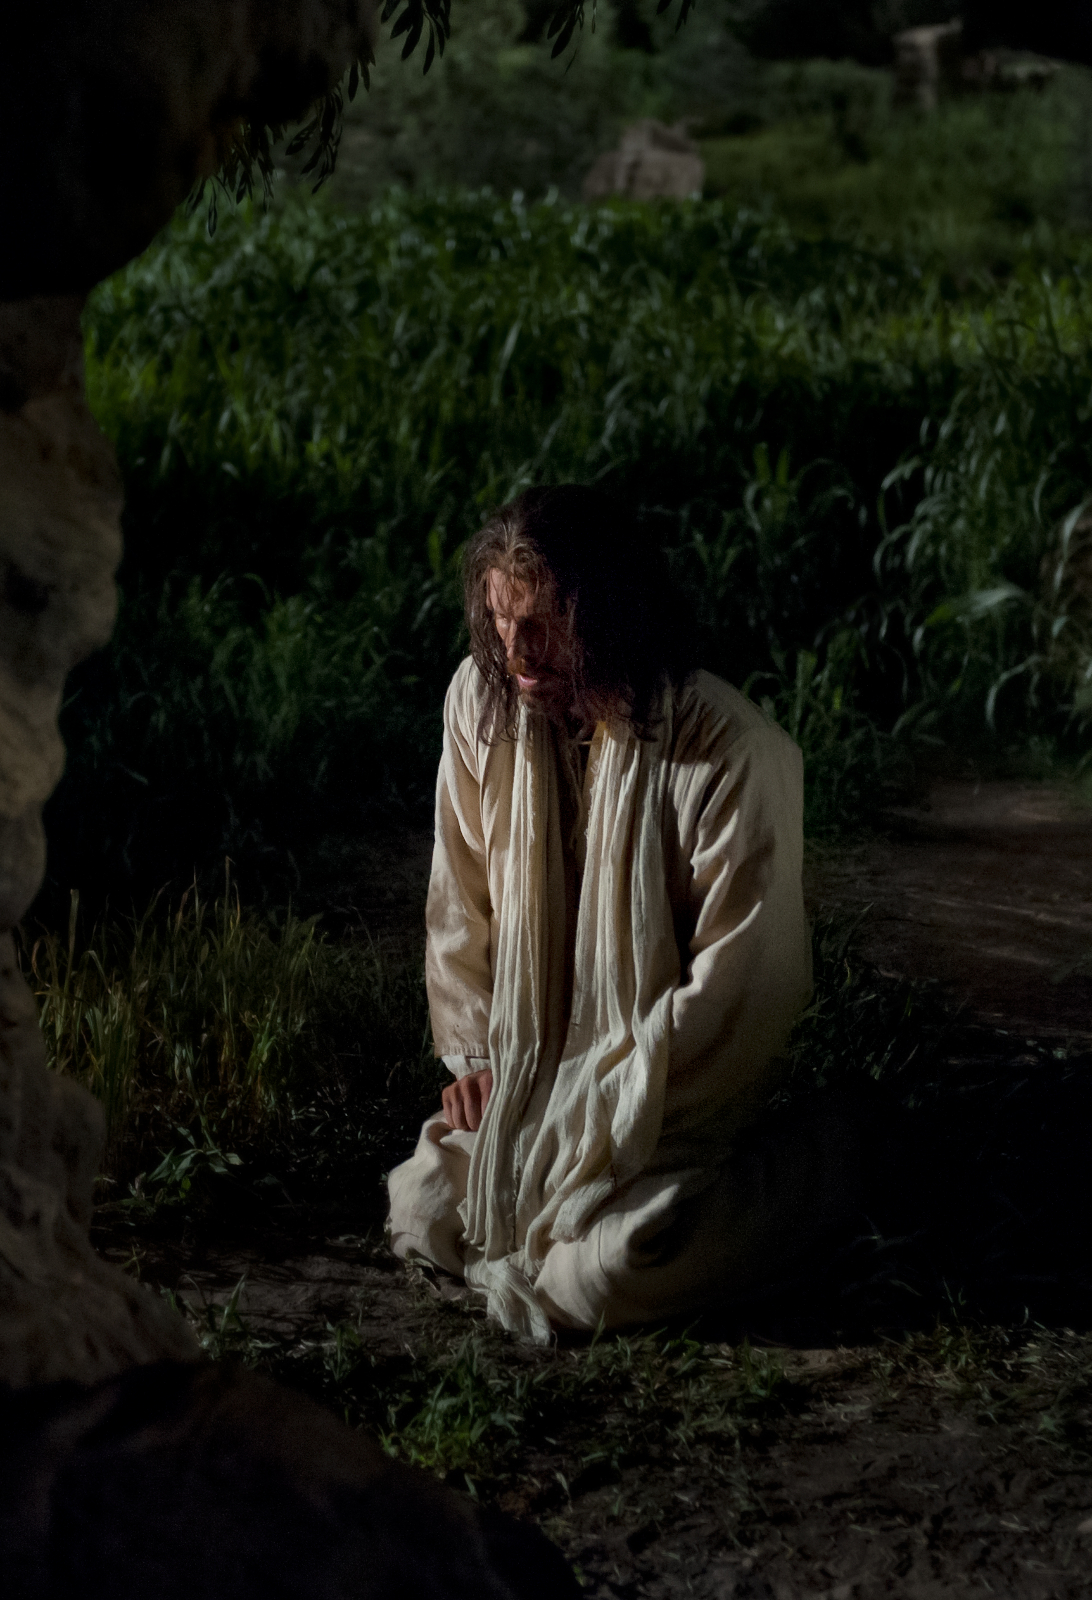 Christ Kneels In The Grove